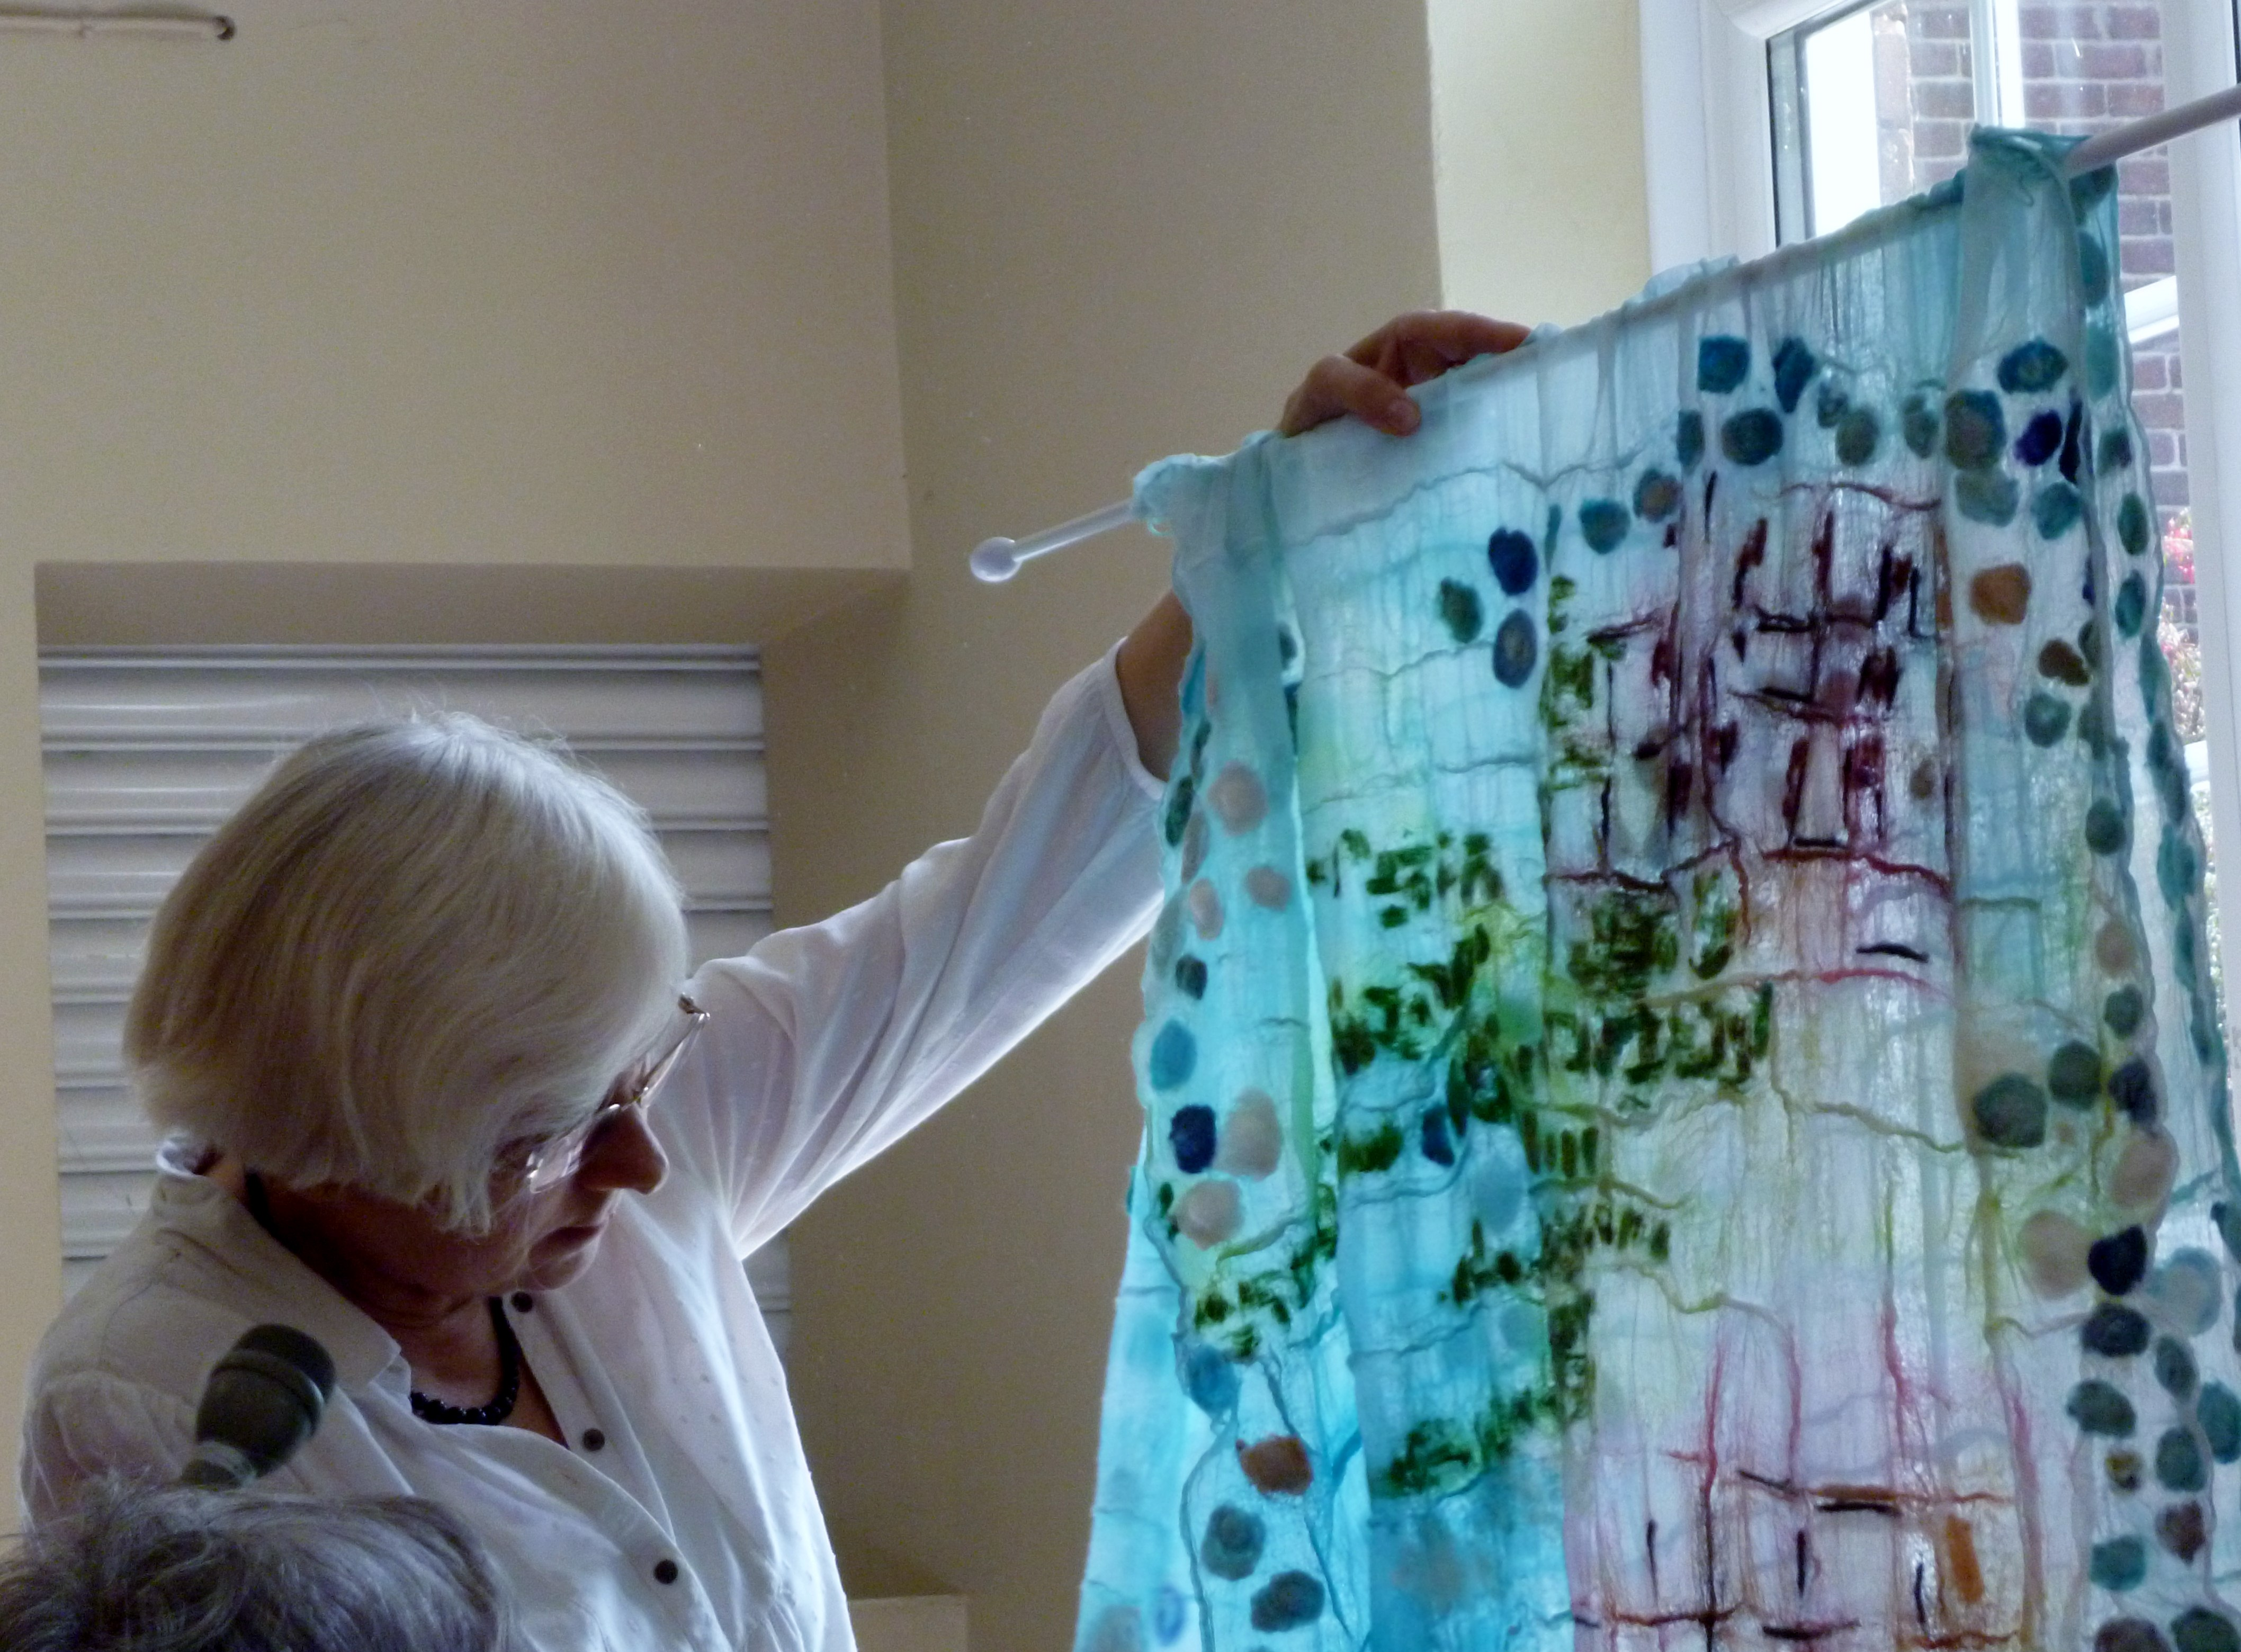 embroidery by Judith Rowley at MEG, August 2019